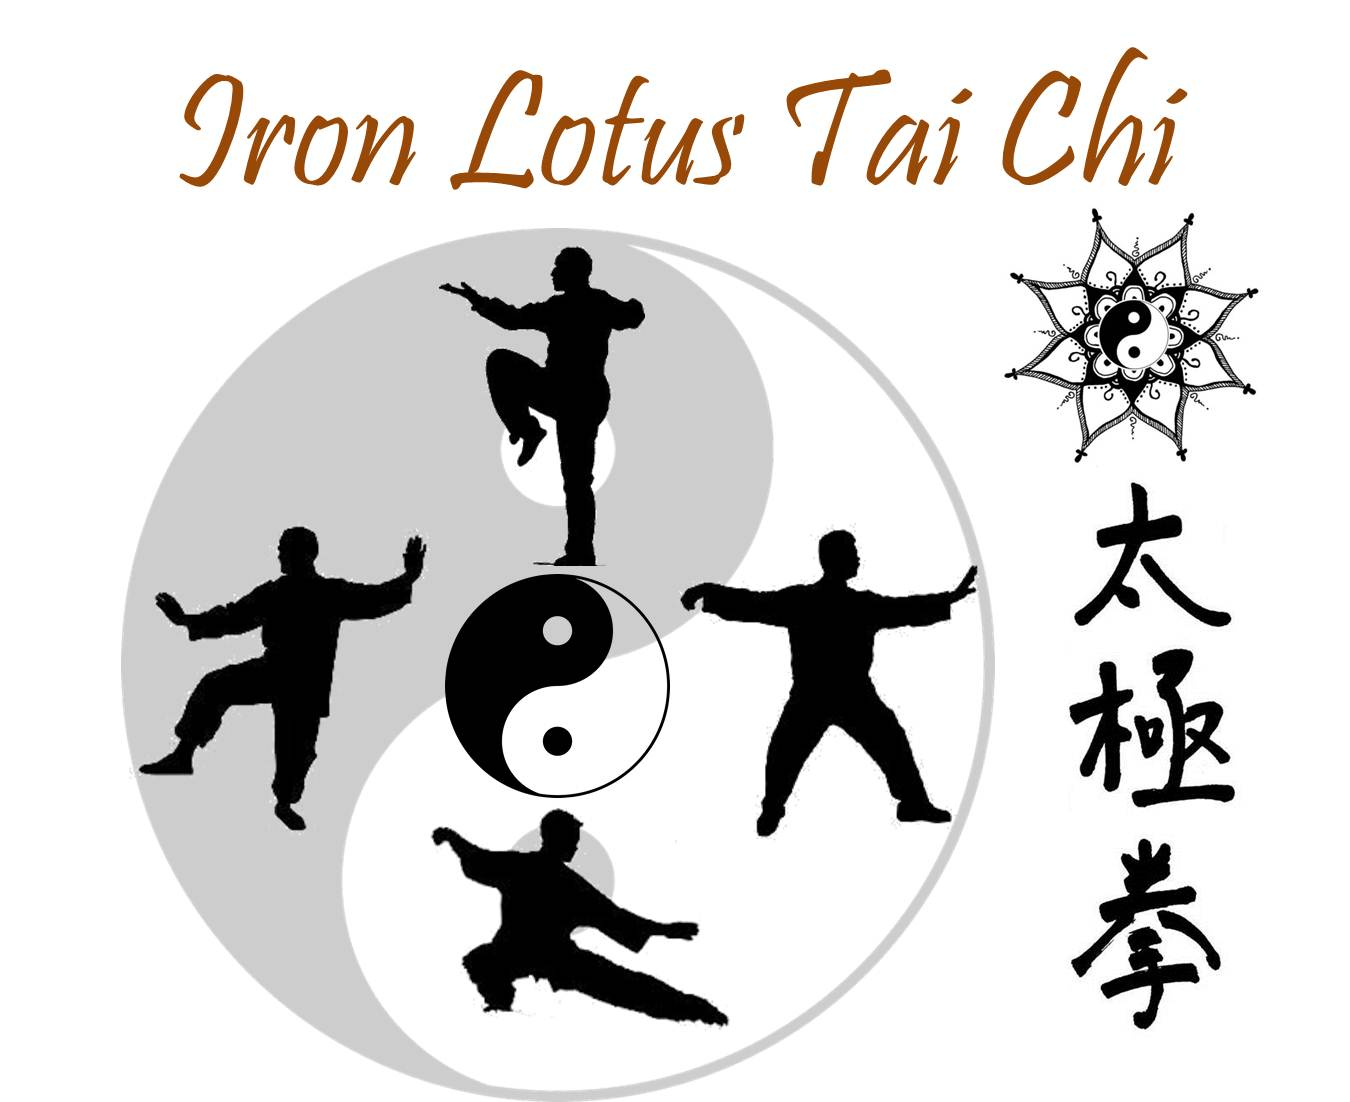 Iron Lotus Tai Chi